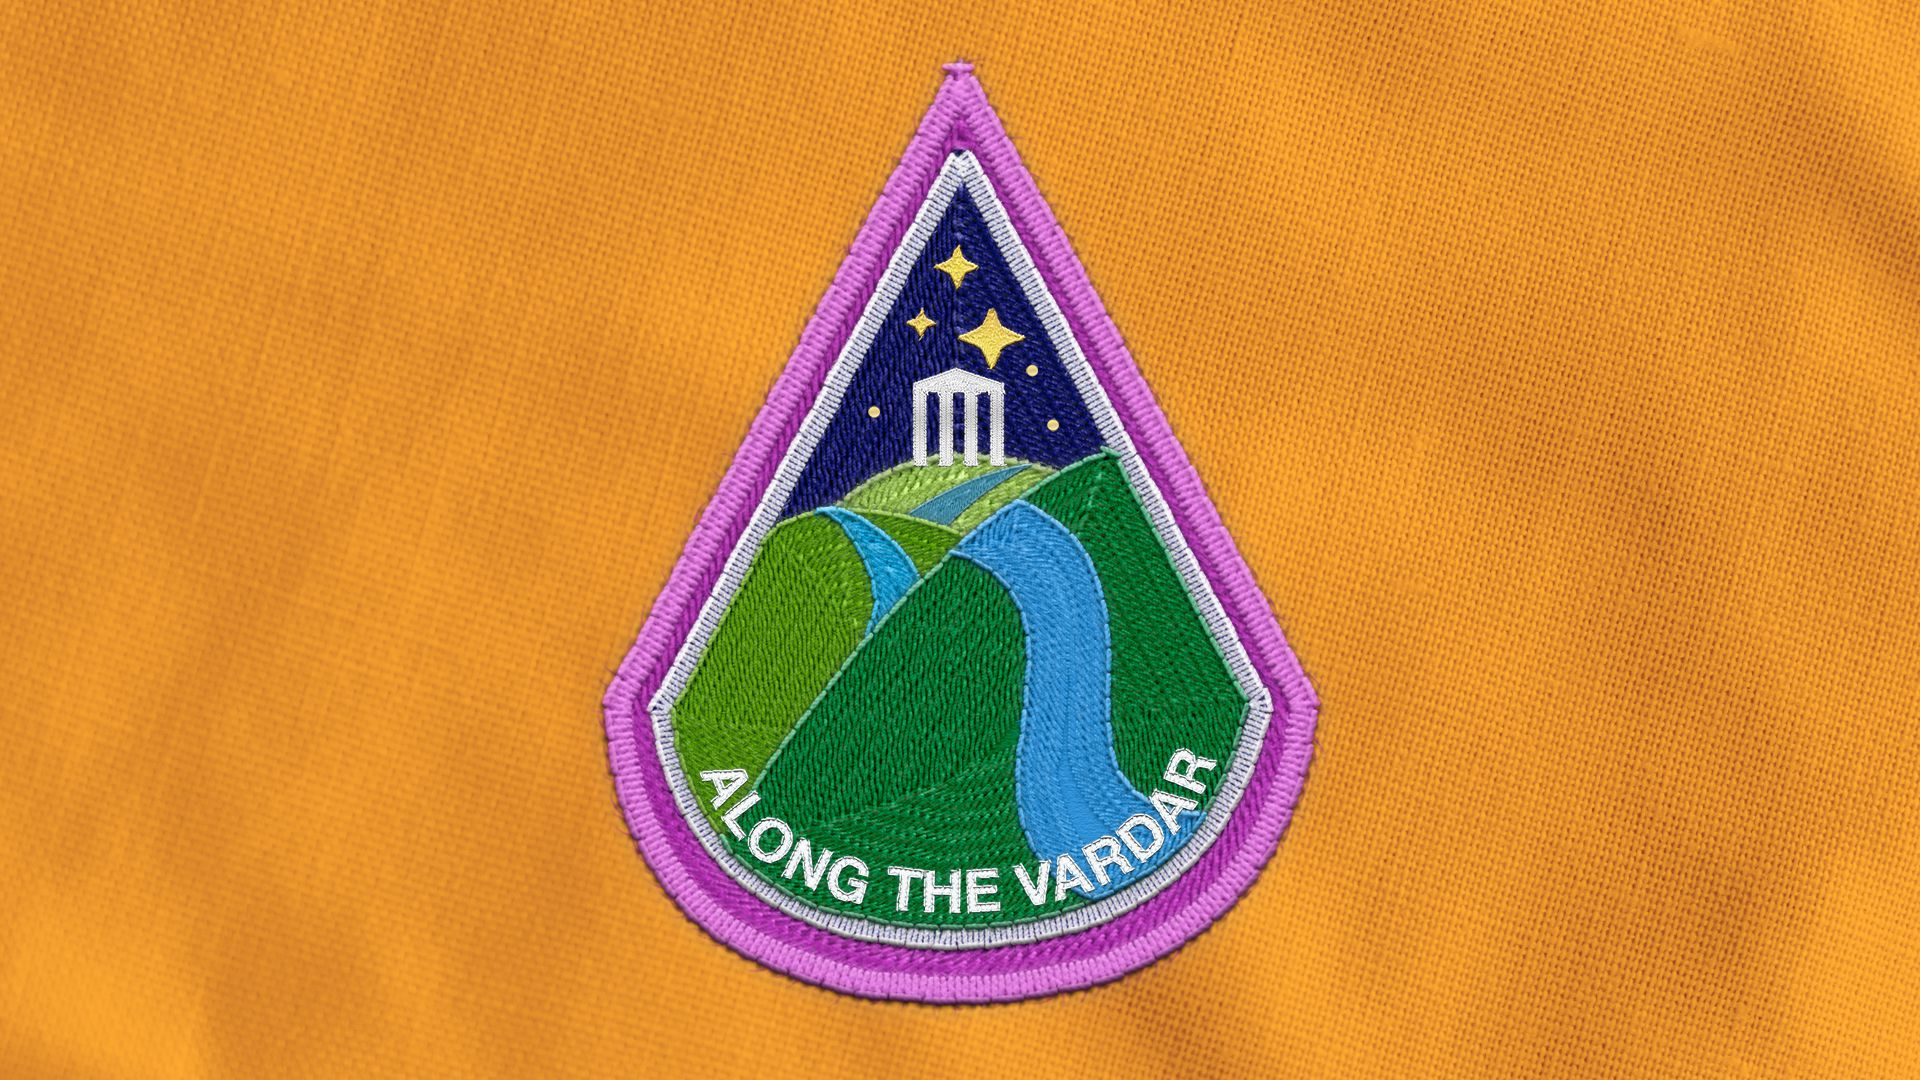 "Illustration of an astronaut badge depicting a river over rolling hills with a Grecian temple in the background, the words ""ALONG THE VARDAR"" are on the badge."